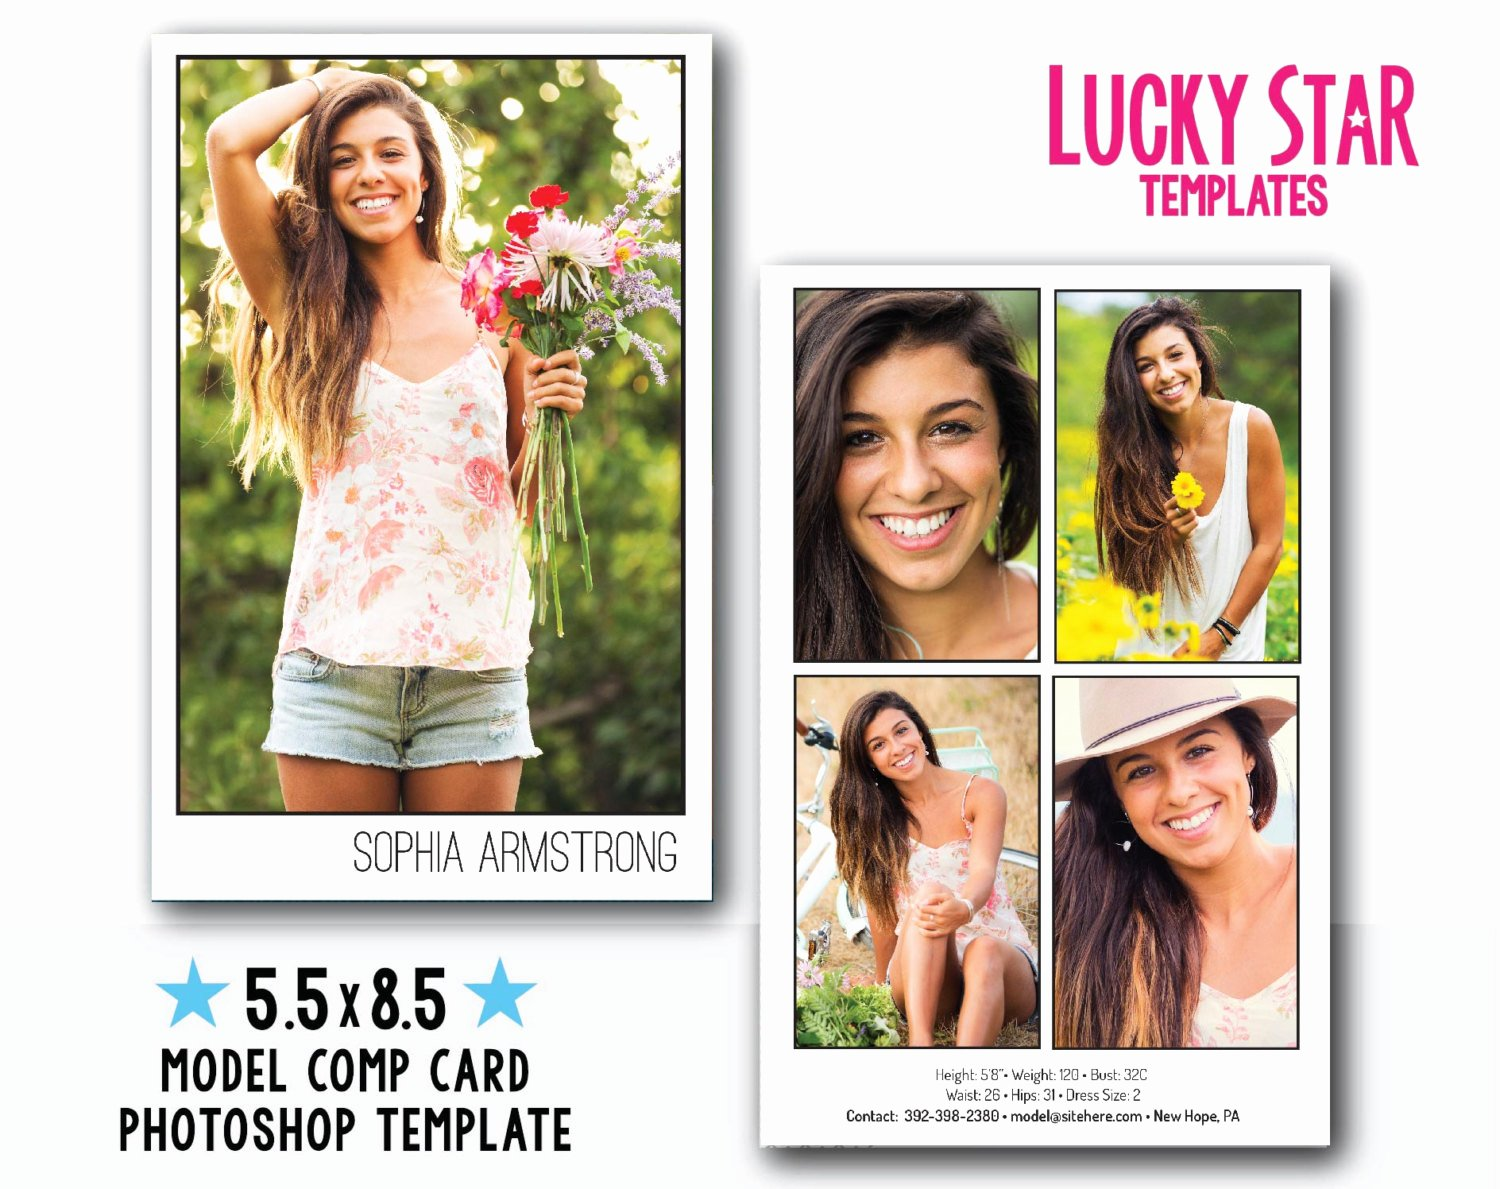 Model Comp Card Template Awesome Customizable Digital Model P Card Power Portraits